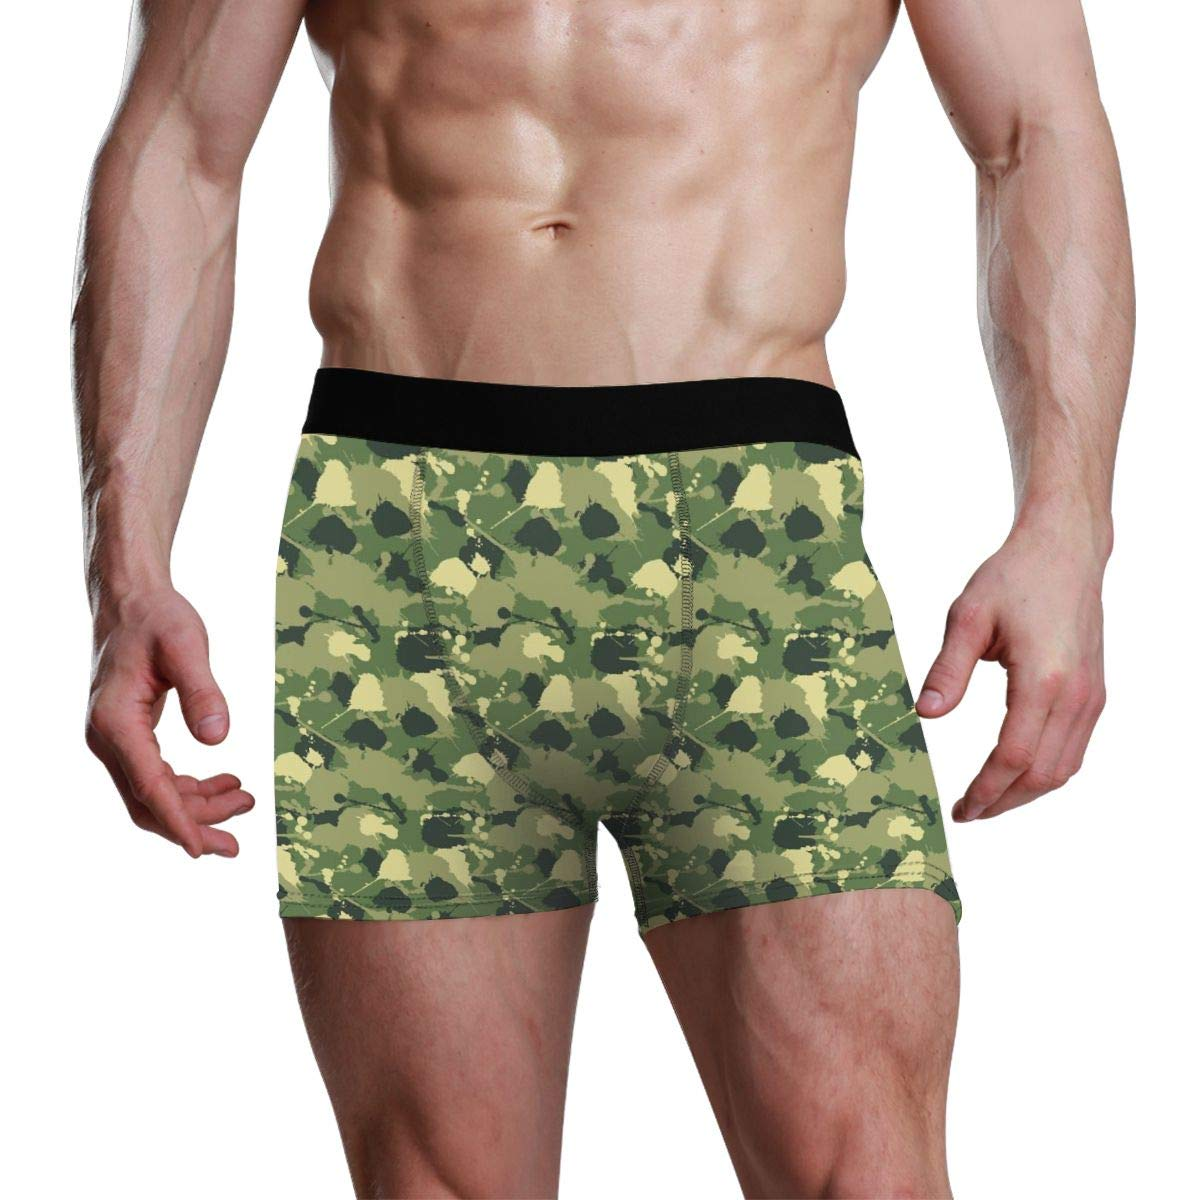 Mens Boxer Briefs Camo Accessories Olive Green Underwear Boxers for Men Soft Underpants